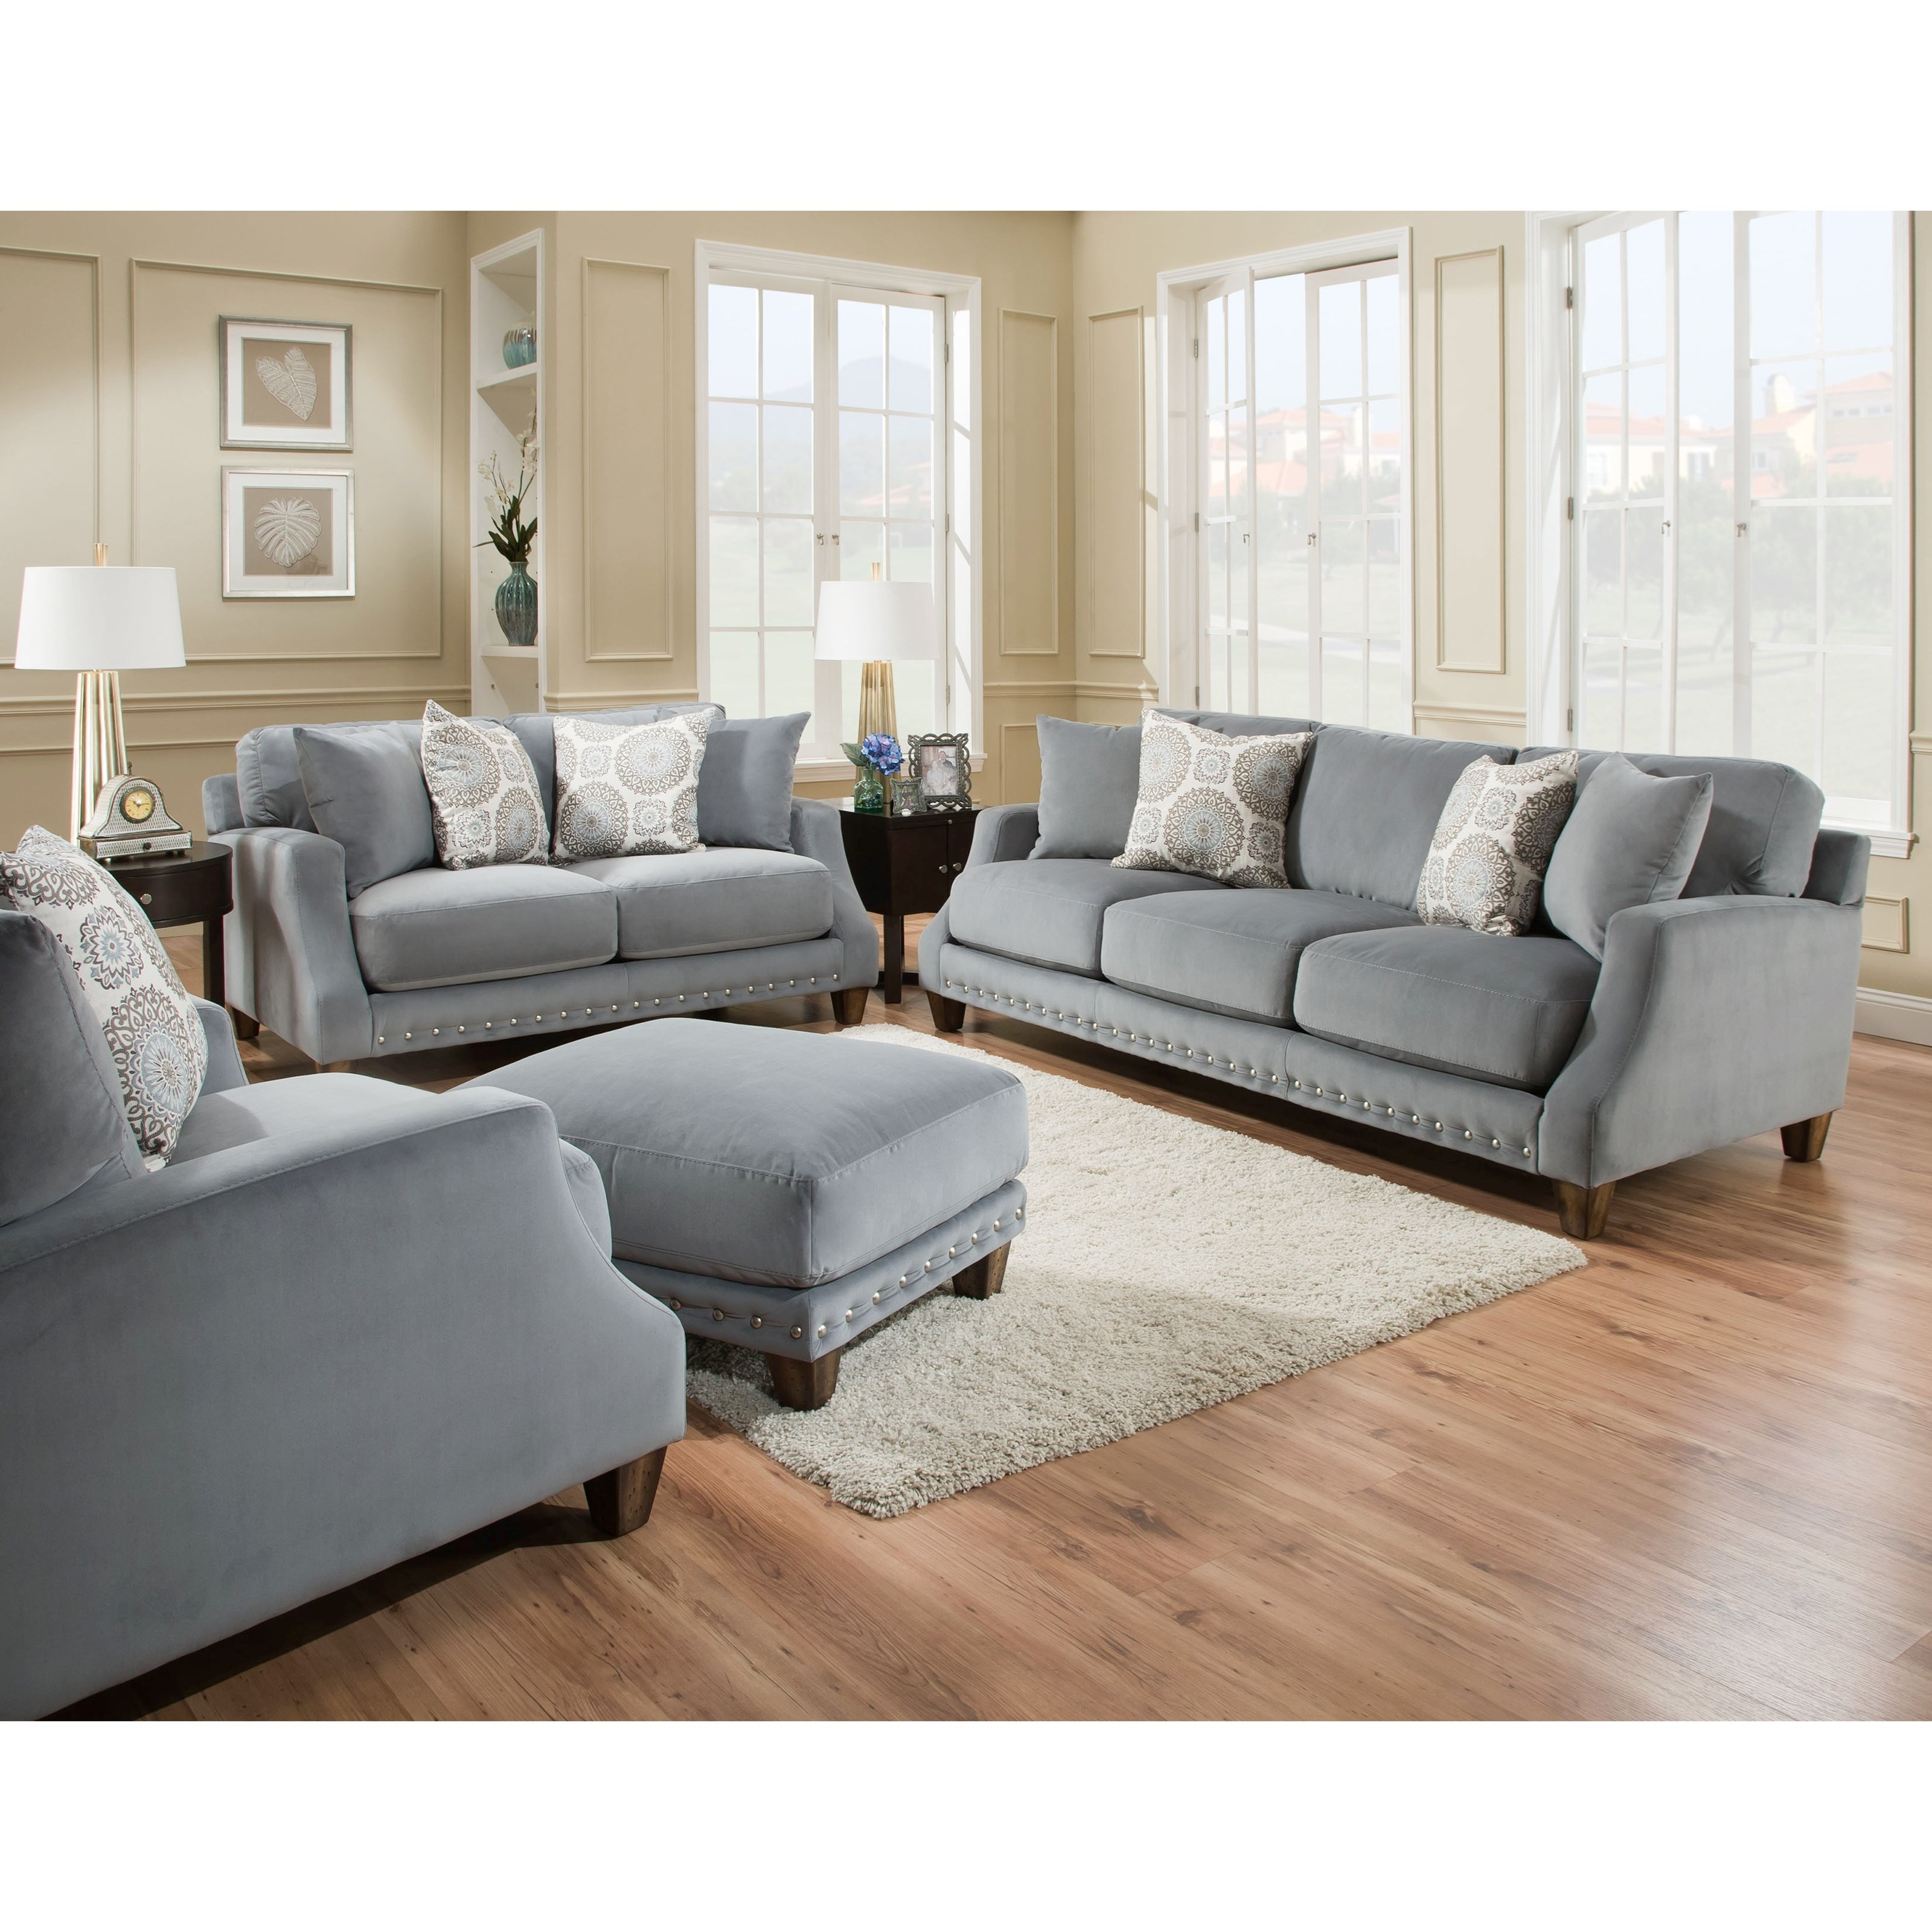 Franklin 863 Loveseat With Transitional Style